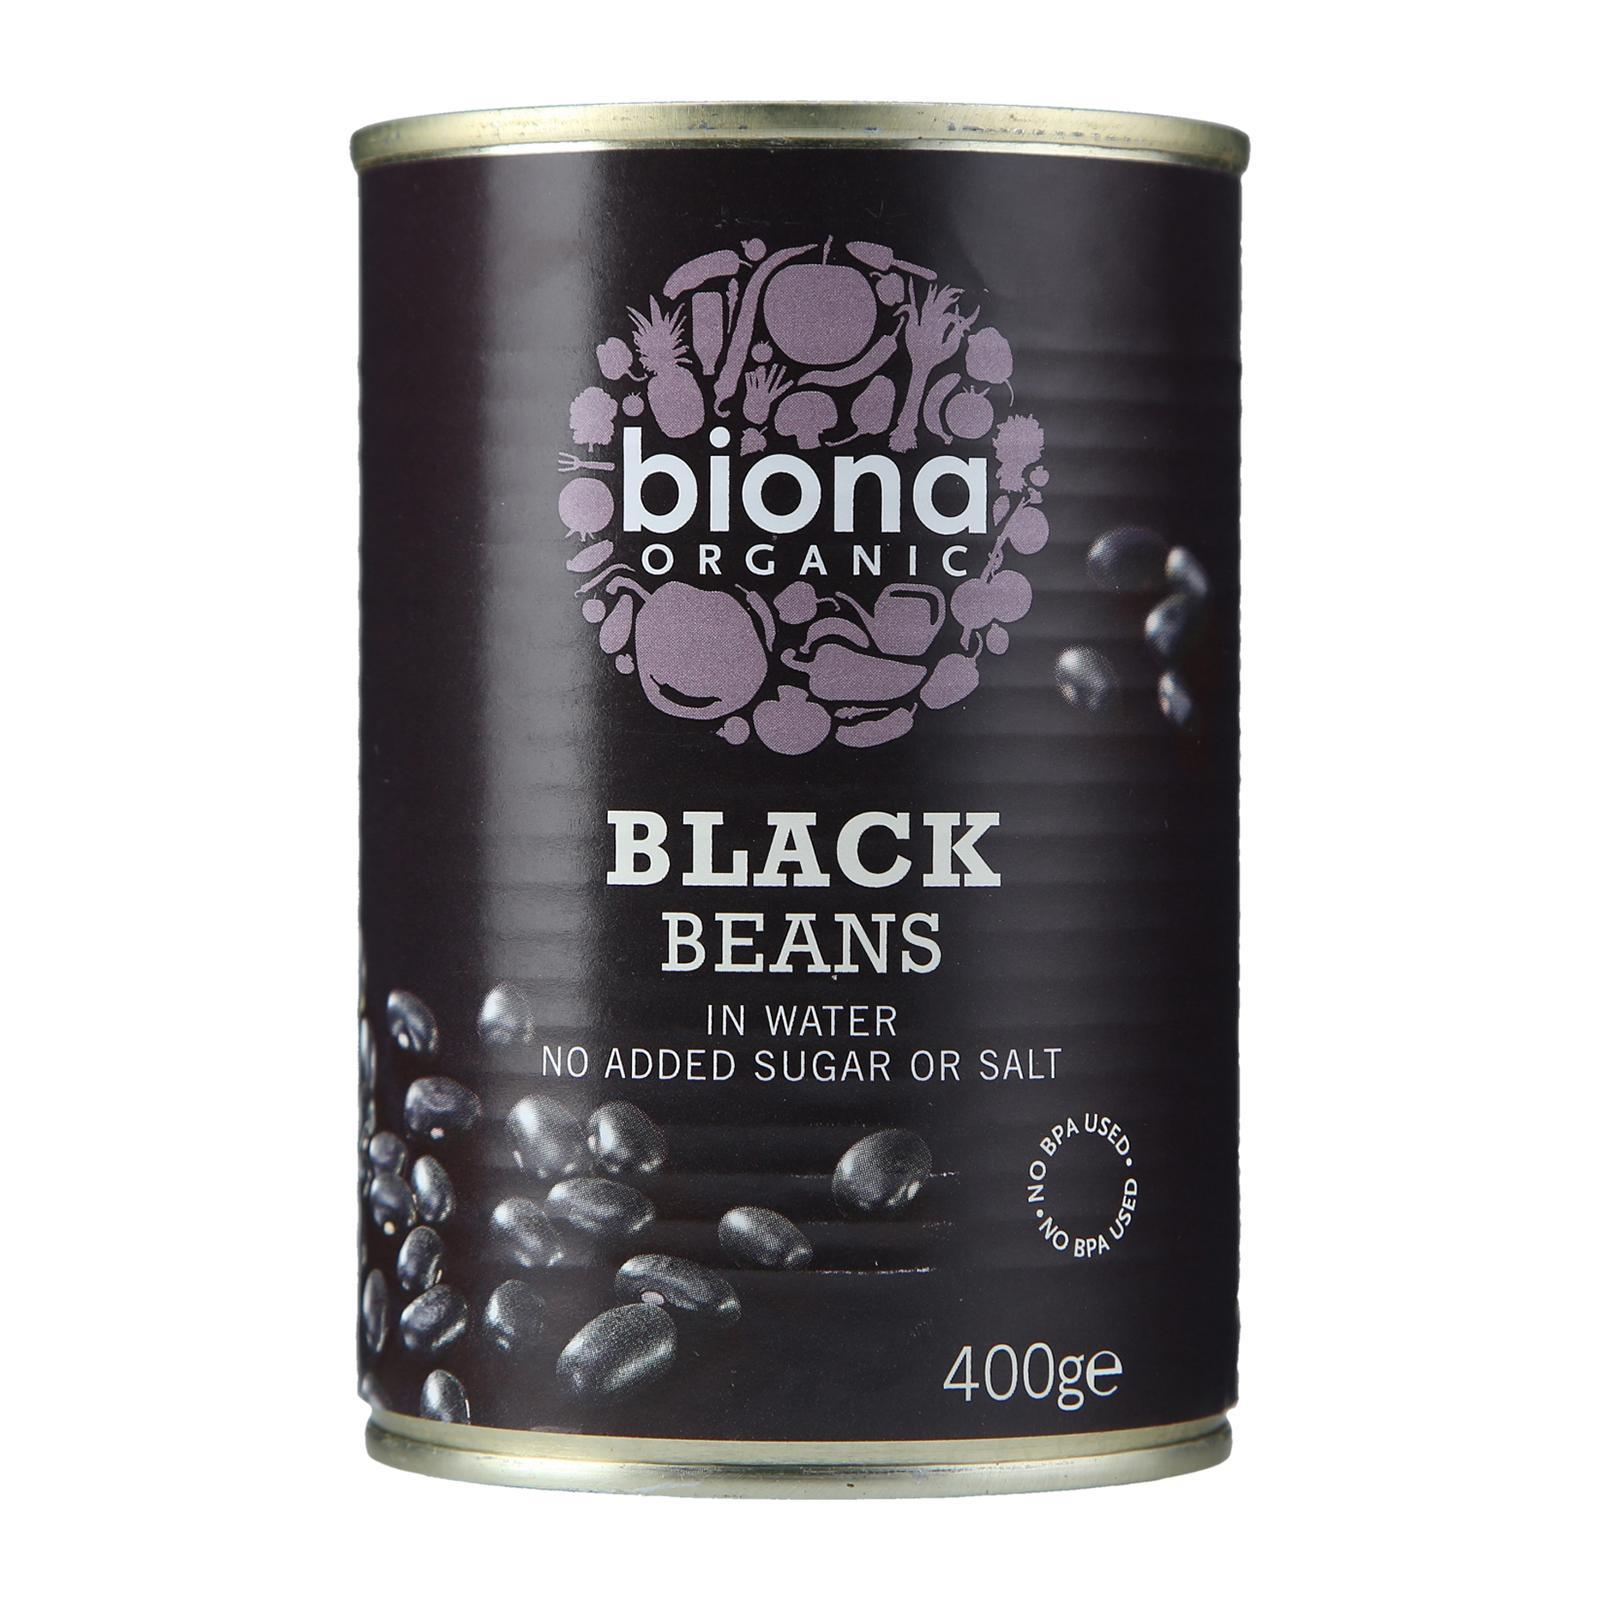 Biona Organic Black Beans - By Wholesome Harvest